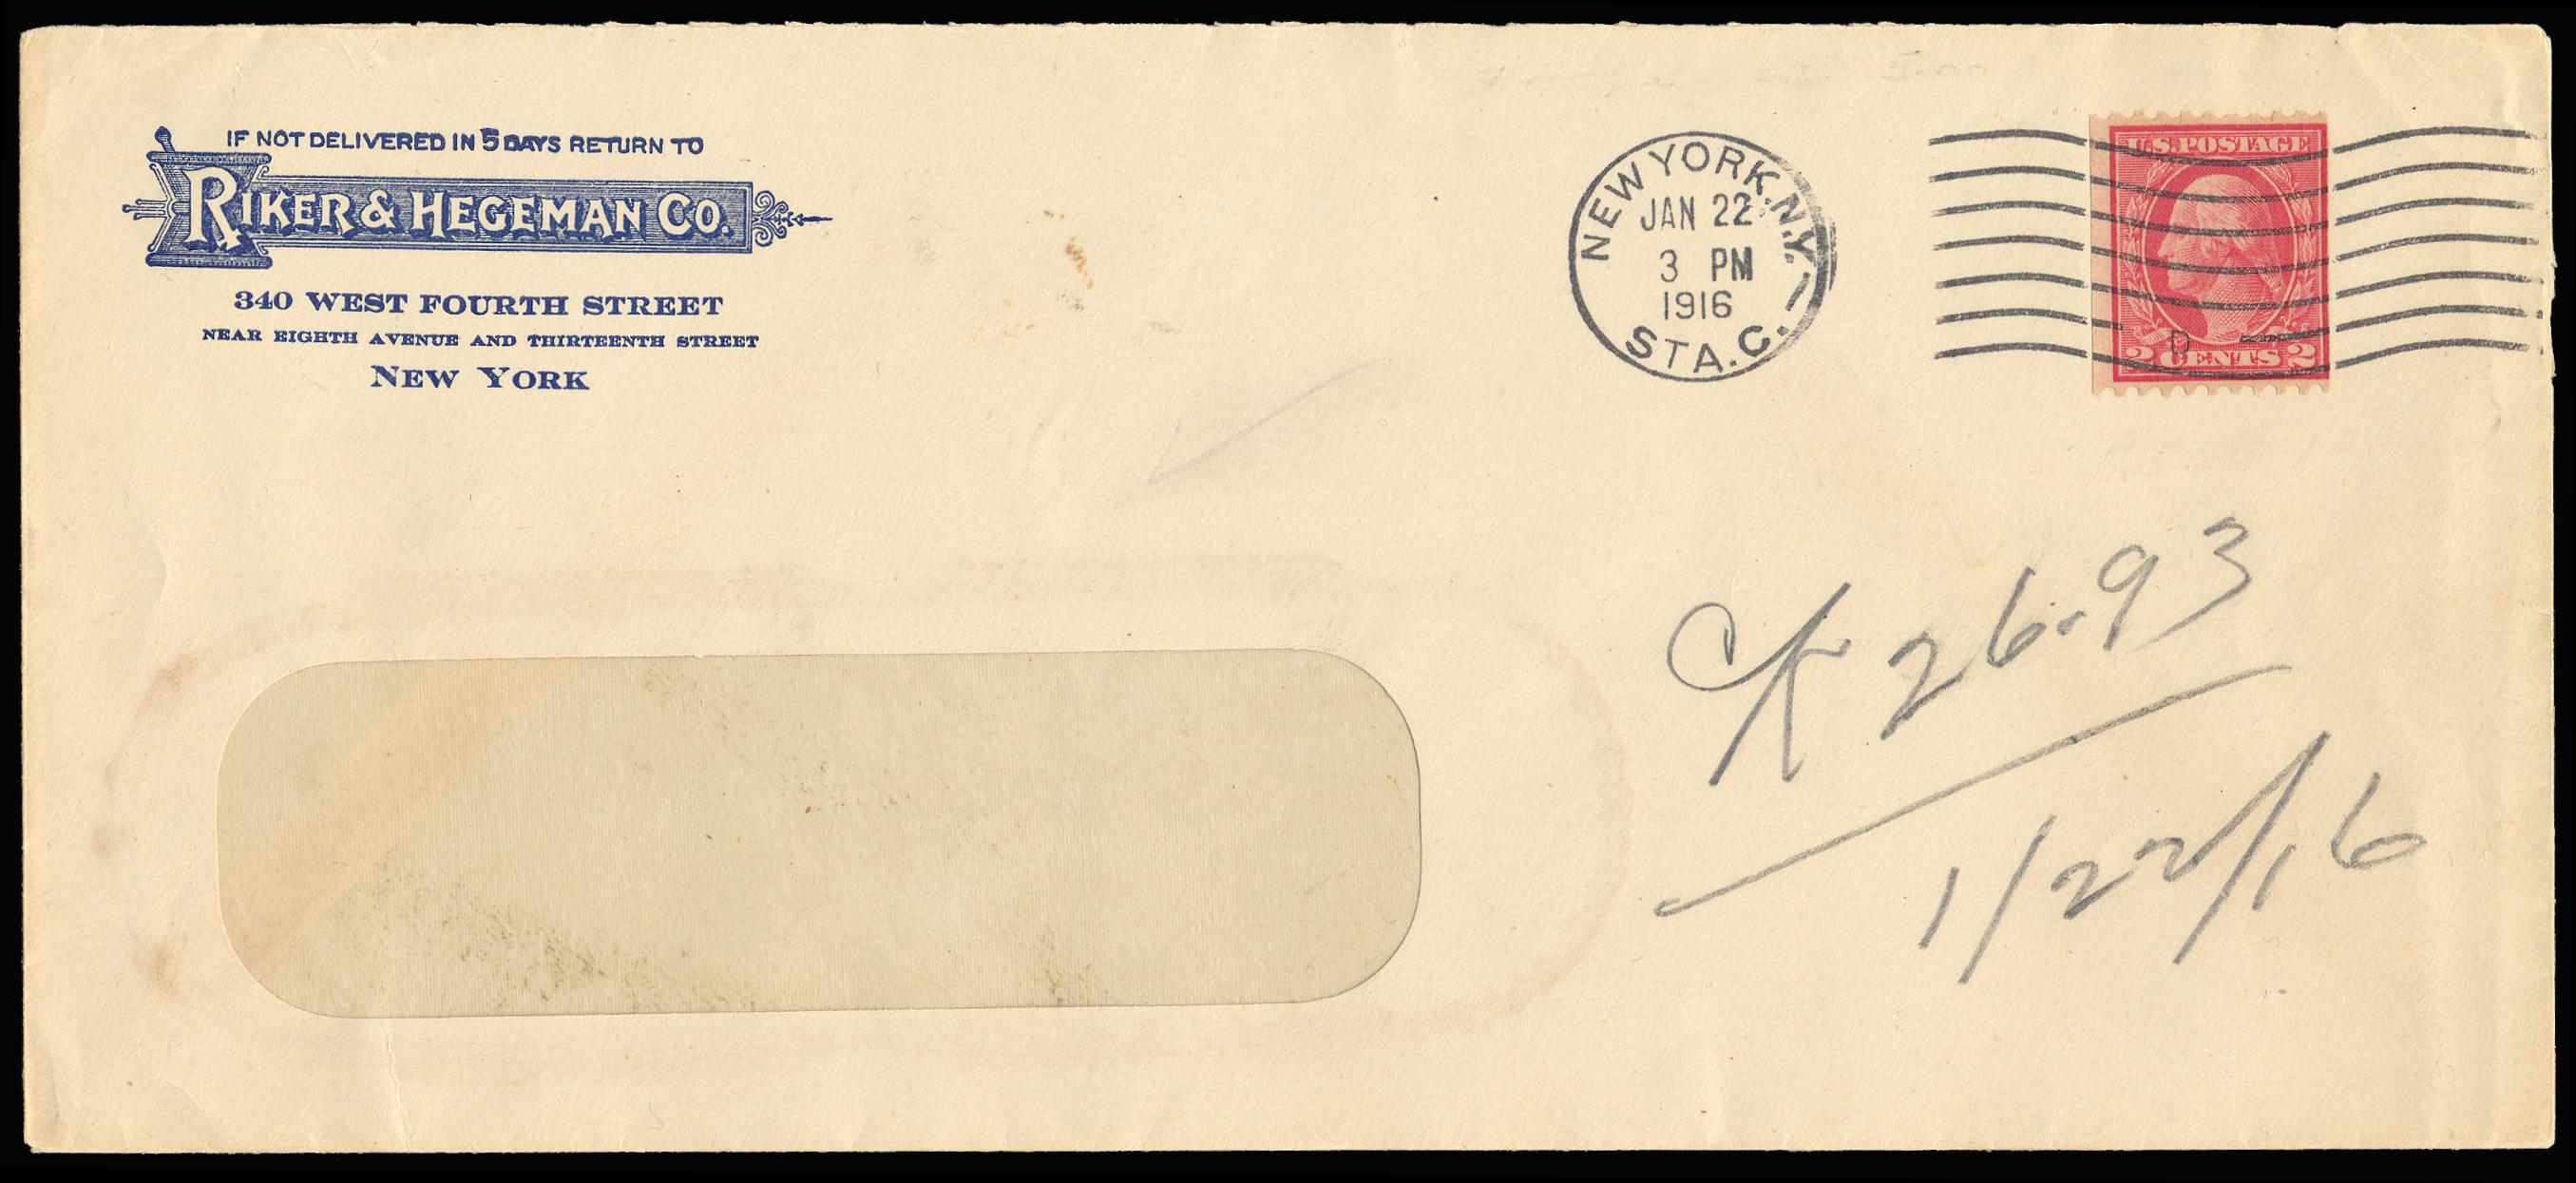 #449 on cover with N.Y., N.Y. machine cancel dated Jan 22, 1916